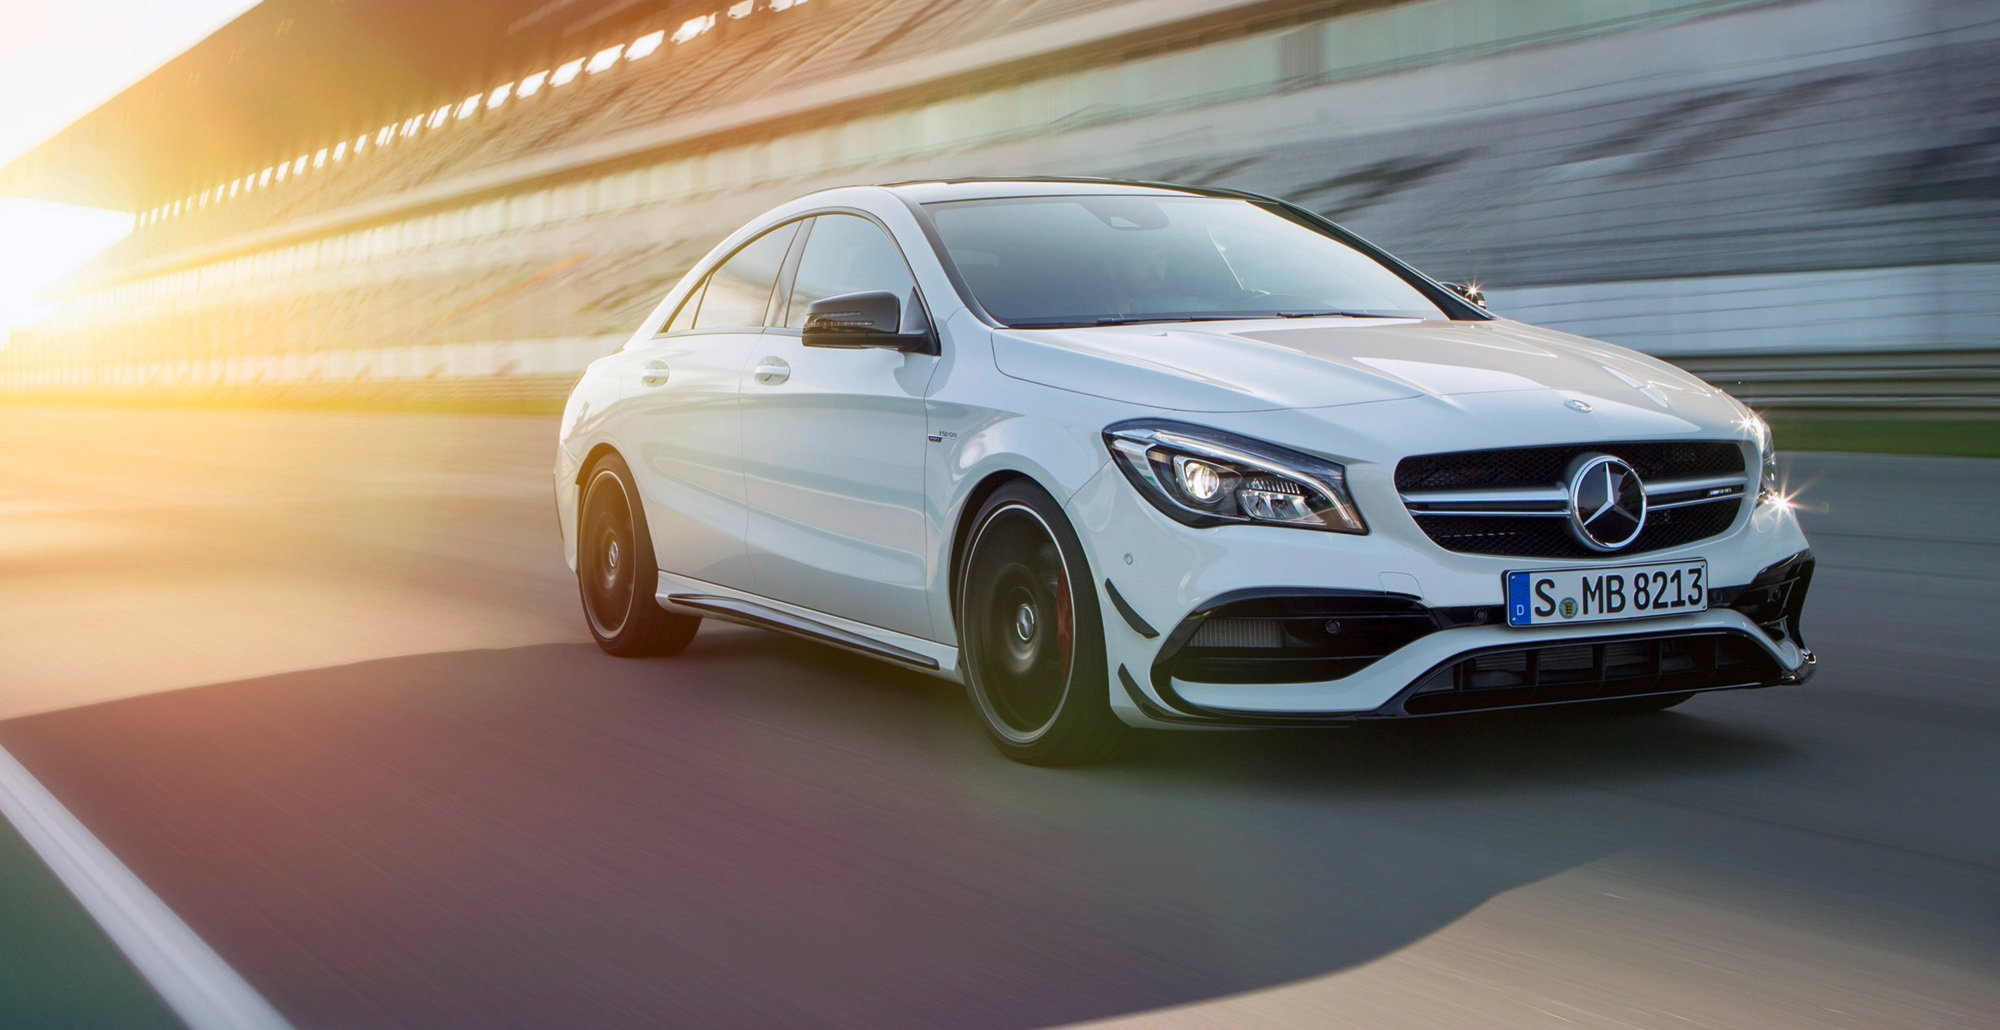 2016 mercedes benz cla updates revealed australian launch for Mercedes benz cla 200 price